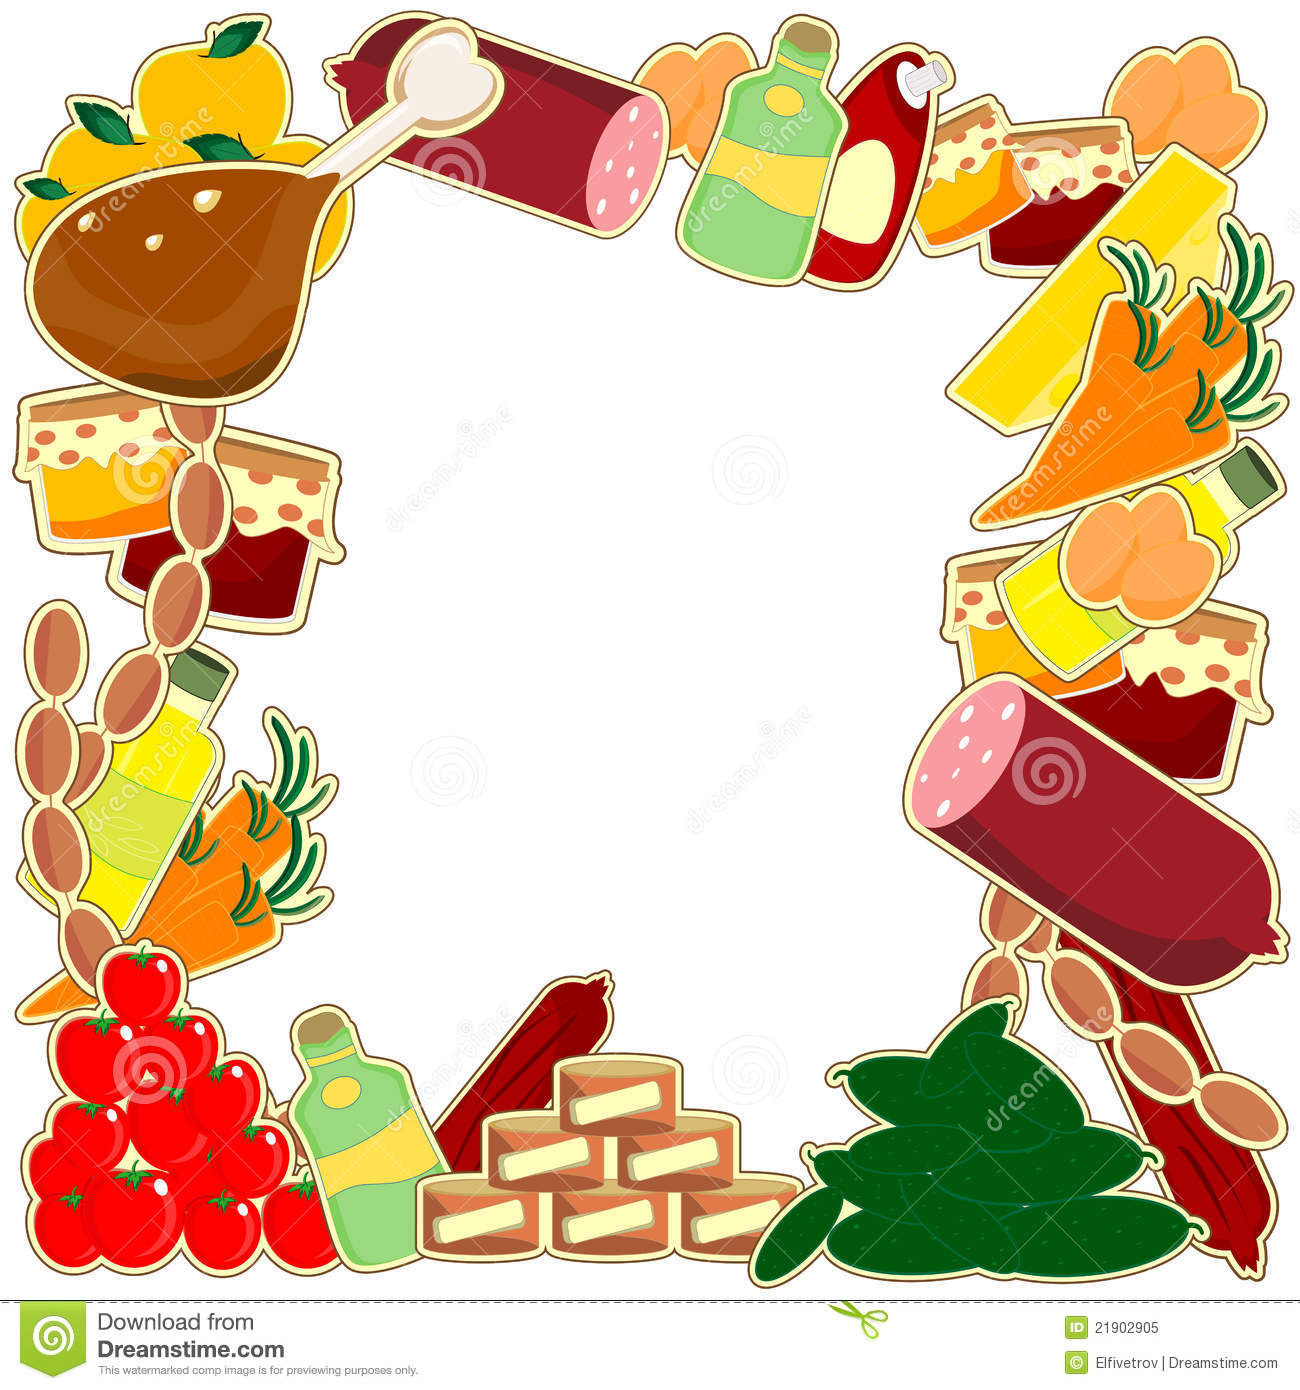 Food Frame Royalty Free Stock Photo - Image: 21902905